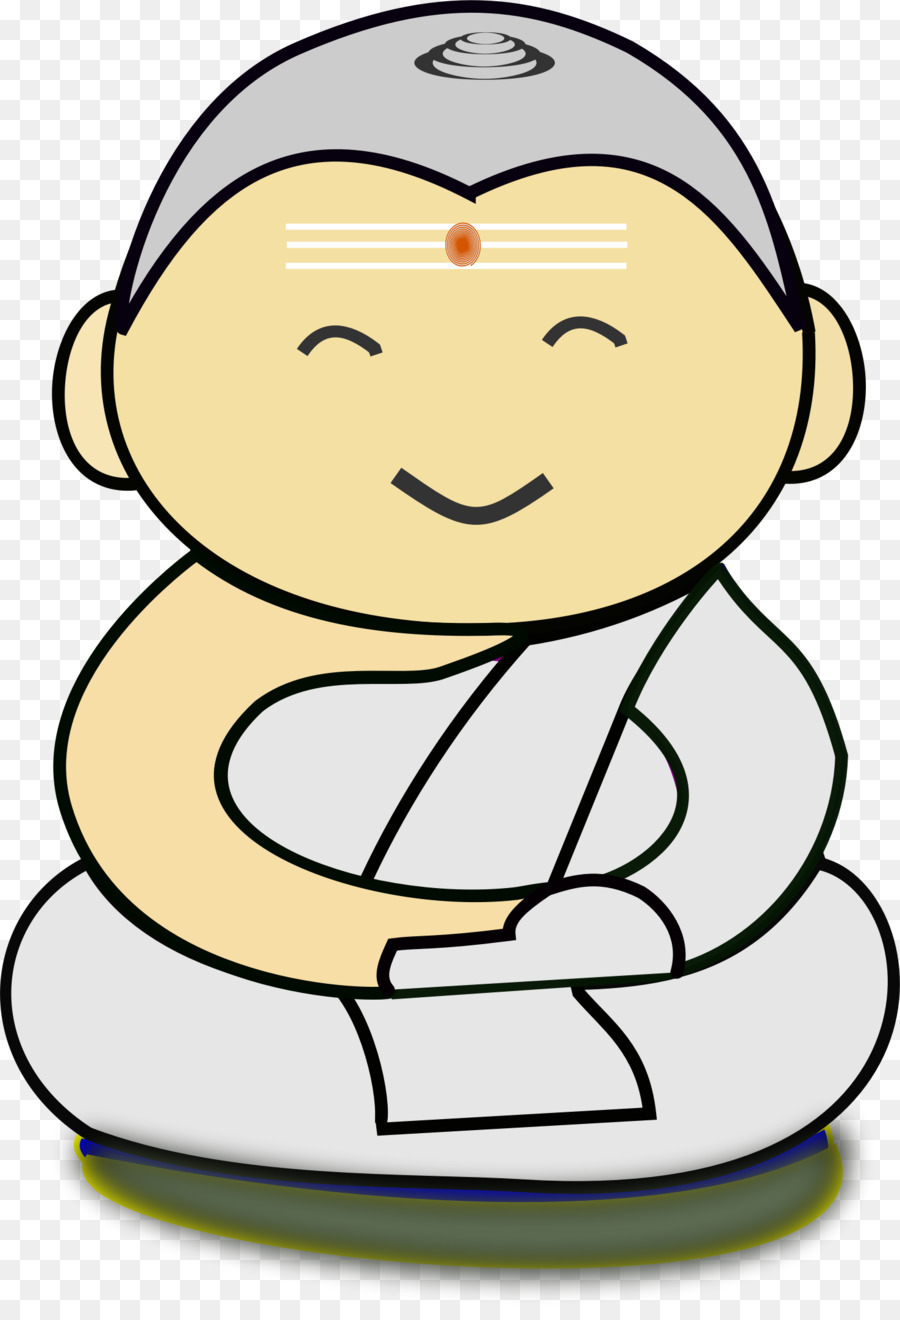 medium resolution of buddhism buddharupa religion clip art buddha clipart png download 1476 2141 free transparent buddhism png download